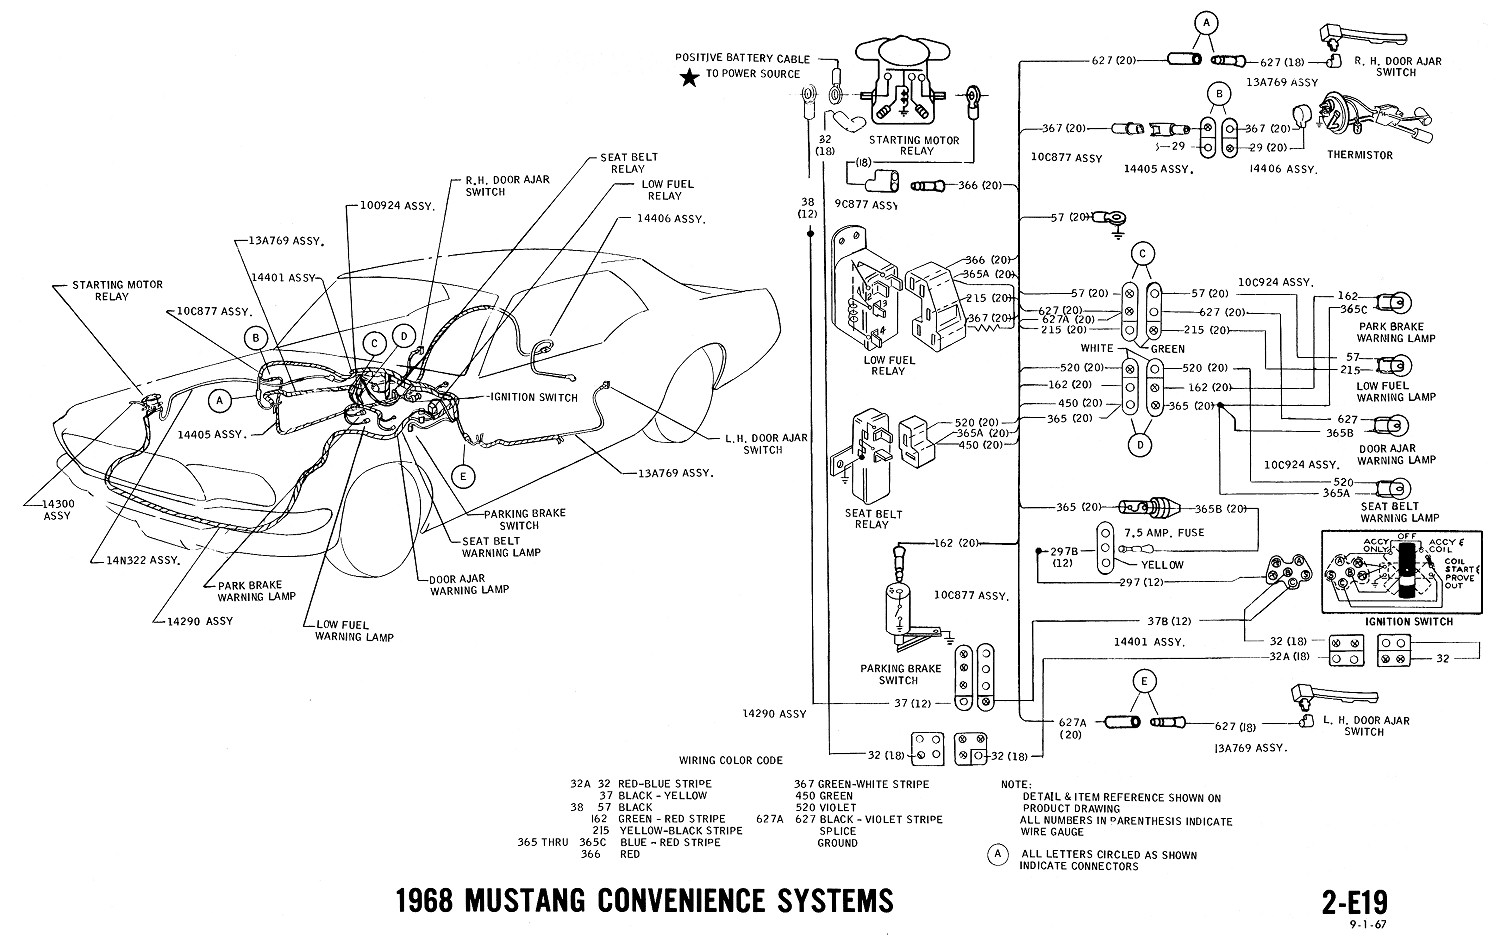 E19 1969 mustang heater control wiring diagram wiring diagrams schematics